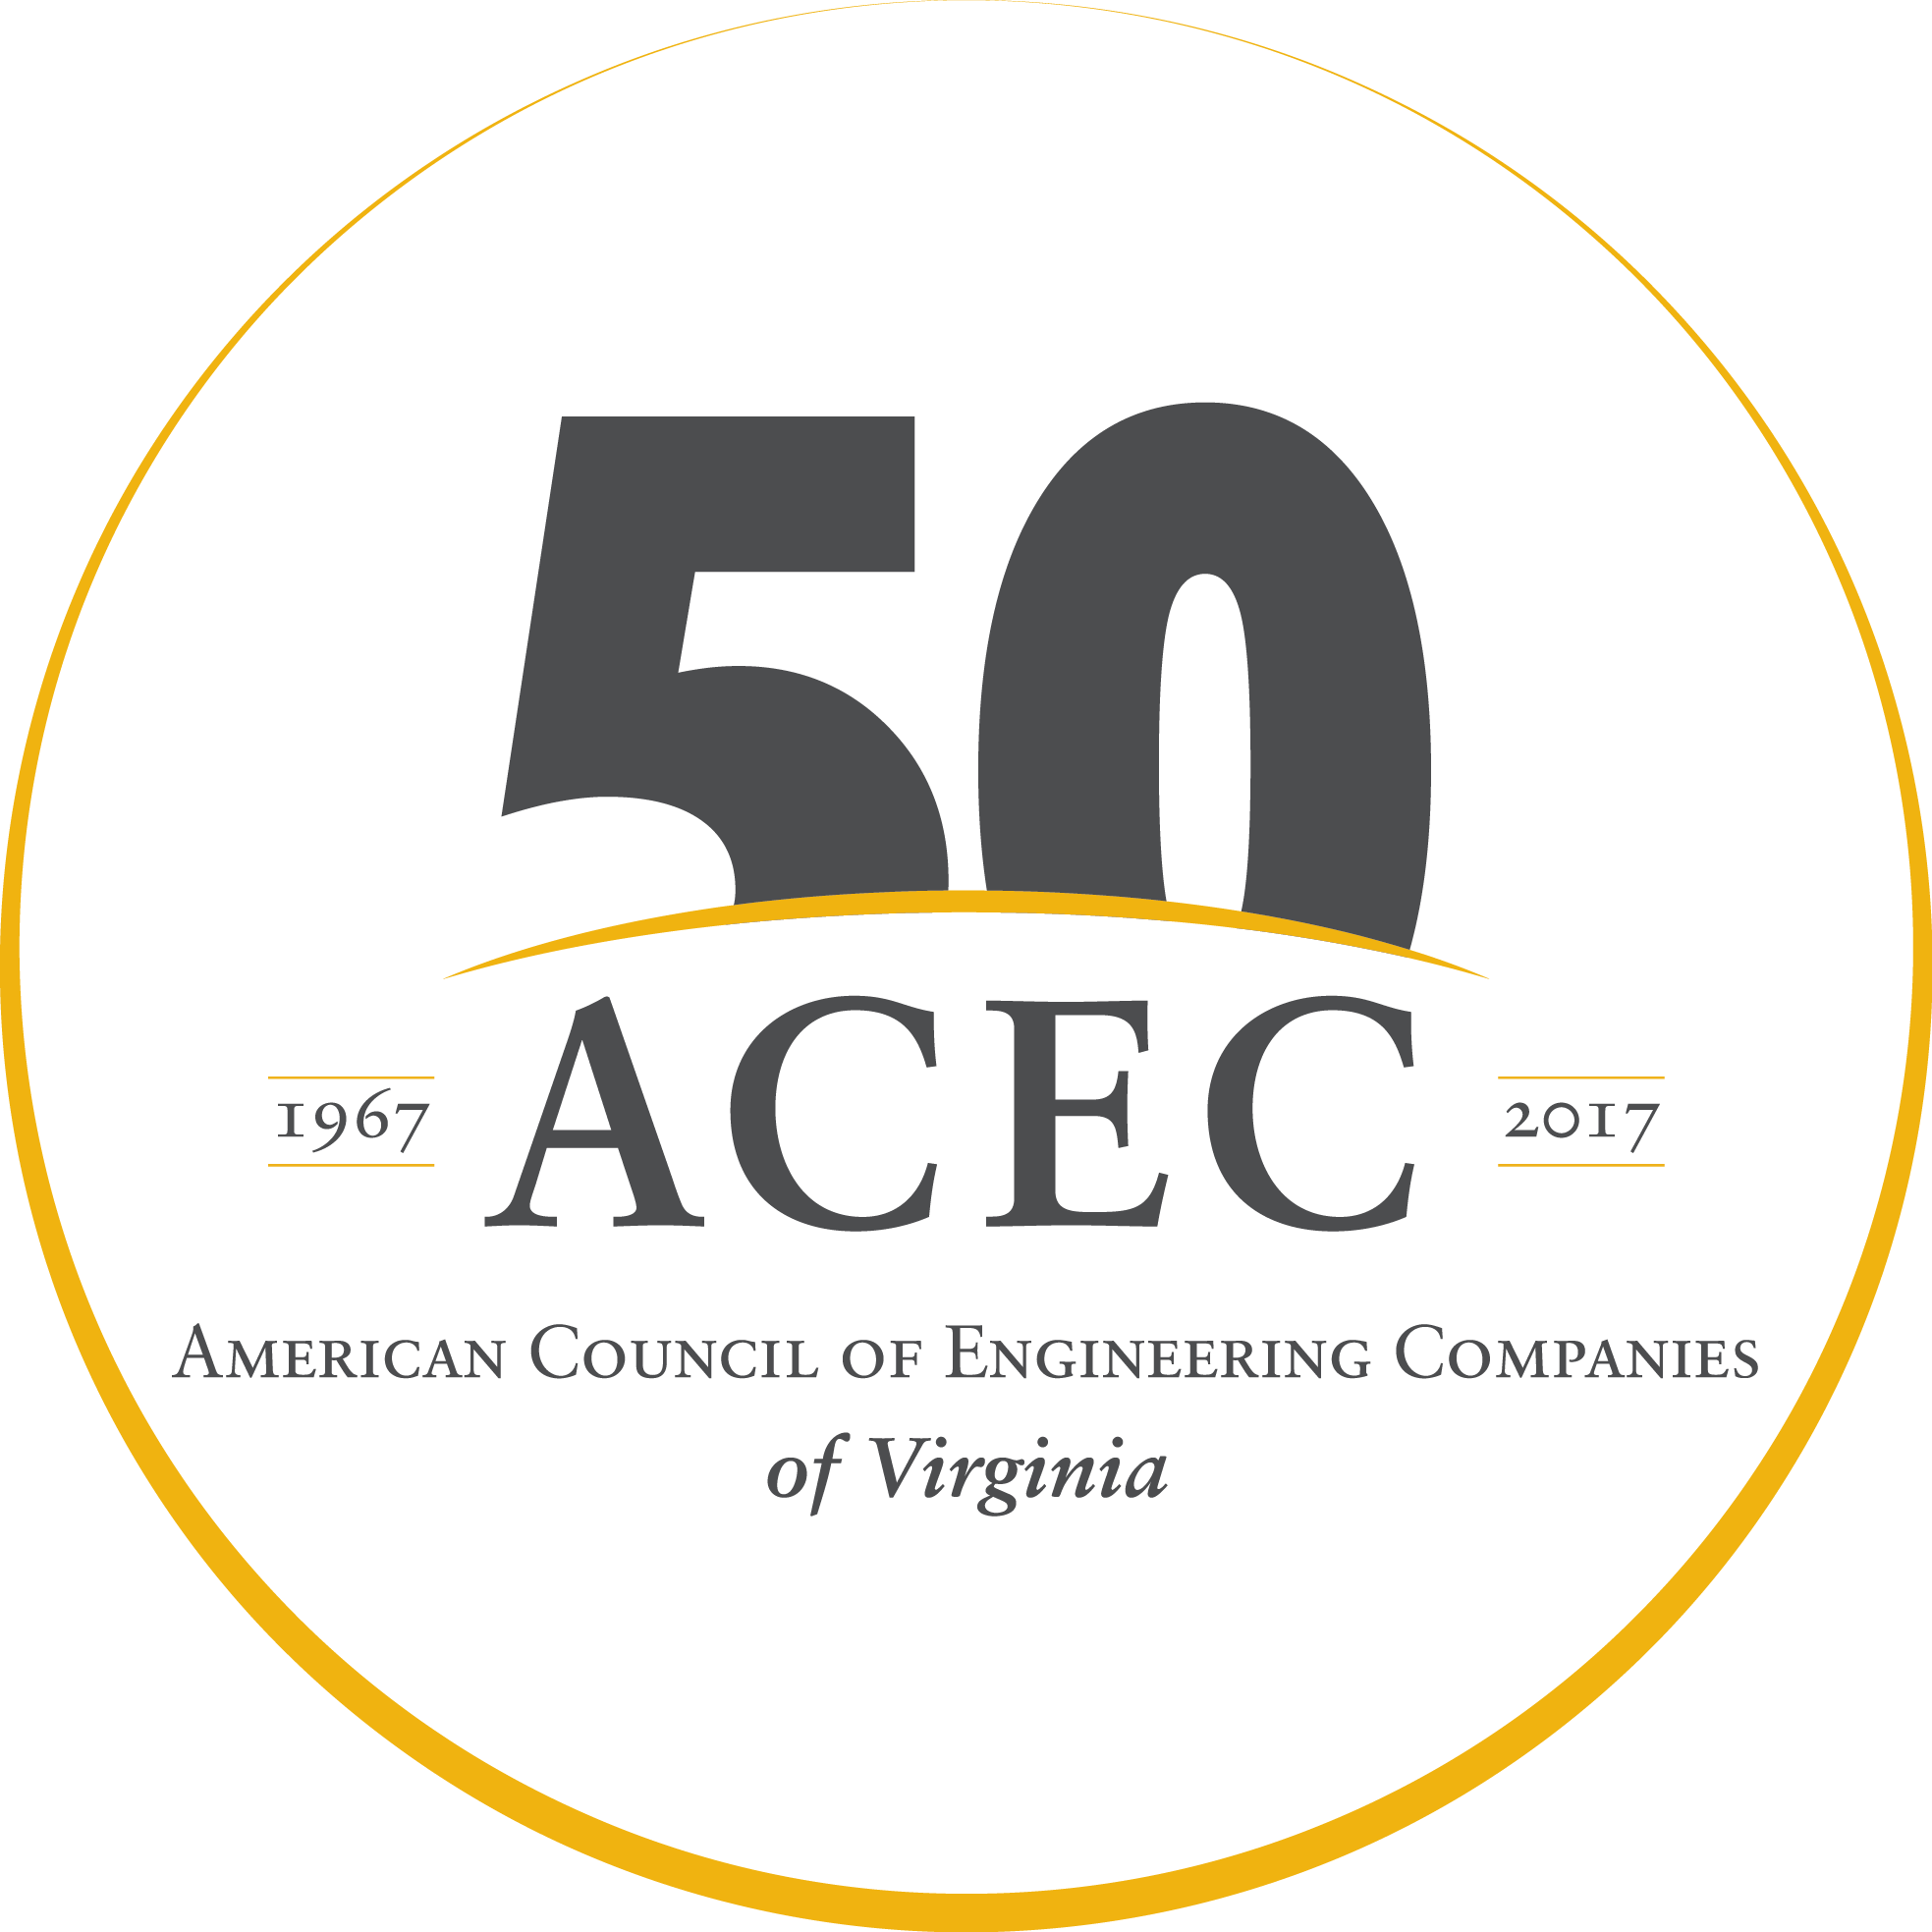 ACEC/VA is Celebrating 50 Years! Click here to learn more.